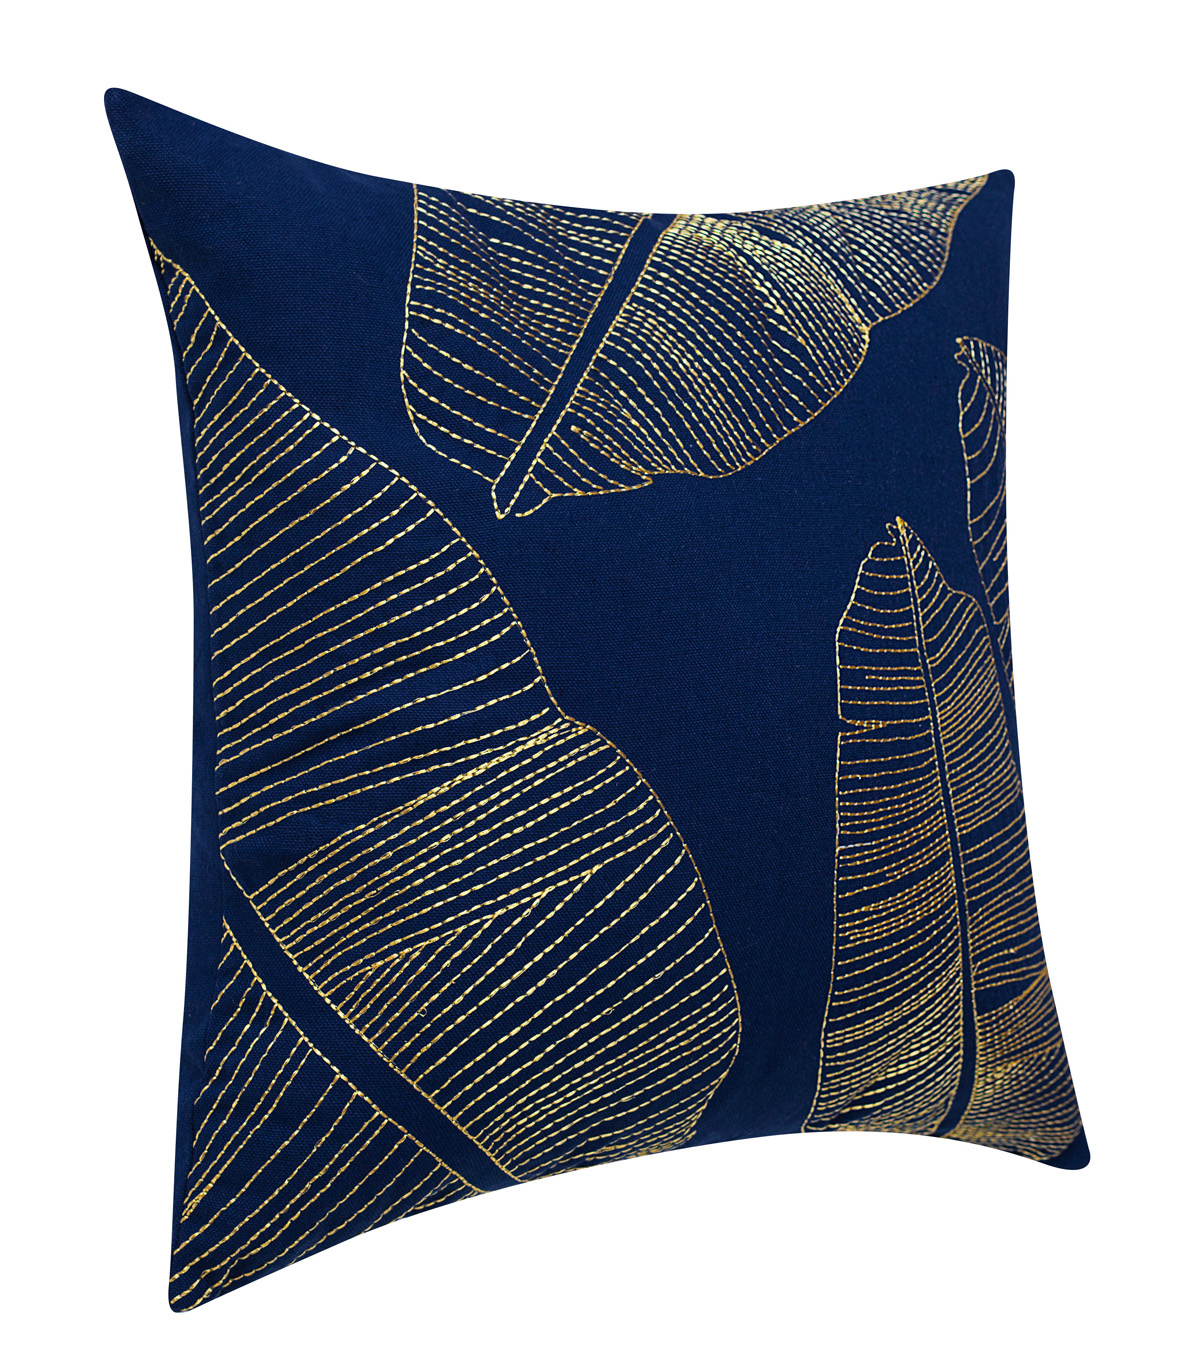 Hudson Finds 18\u0027\u0027x18\u0027\u0027 Pillow-Metallic Leaves on Indigo